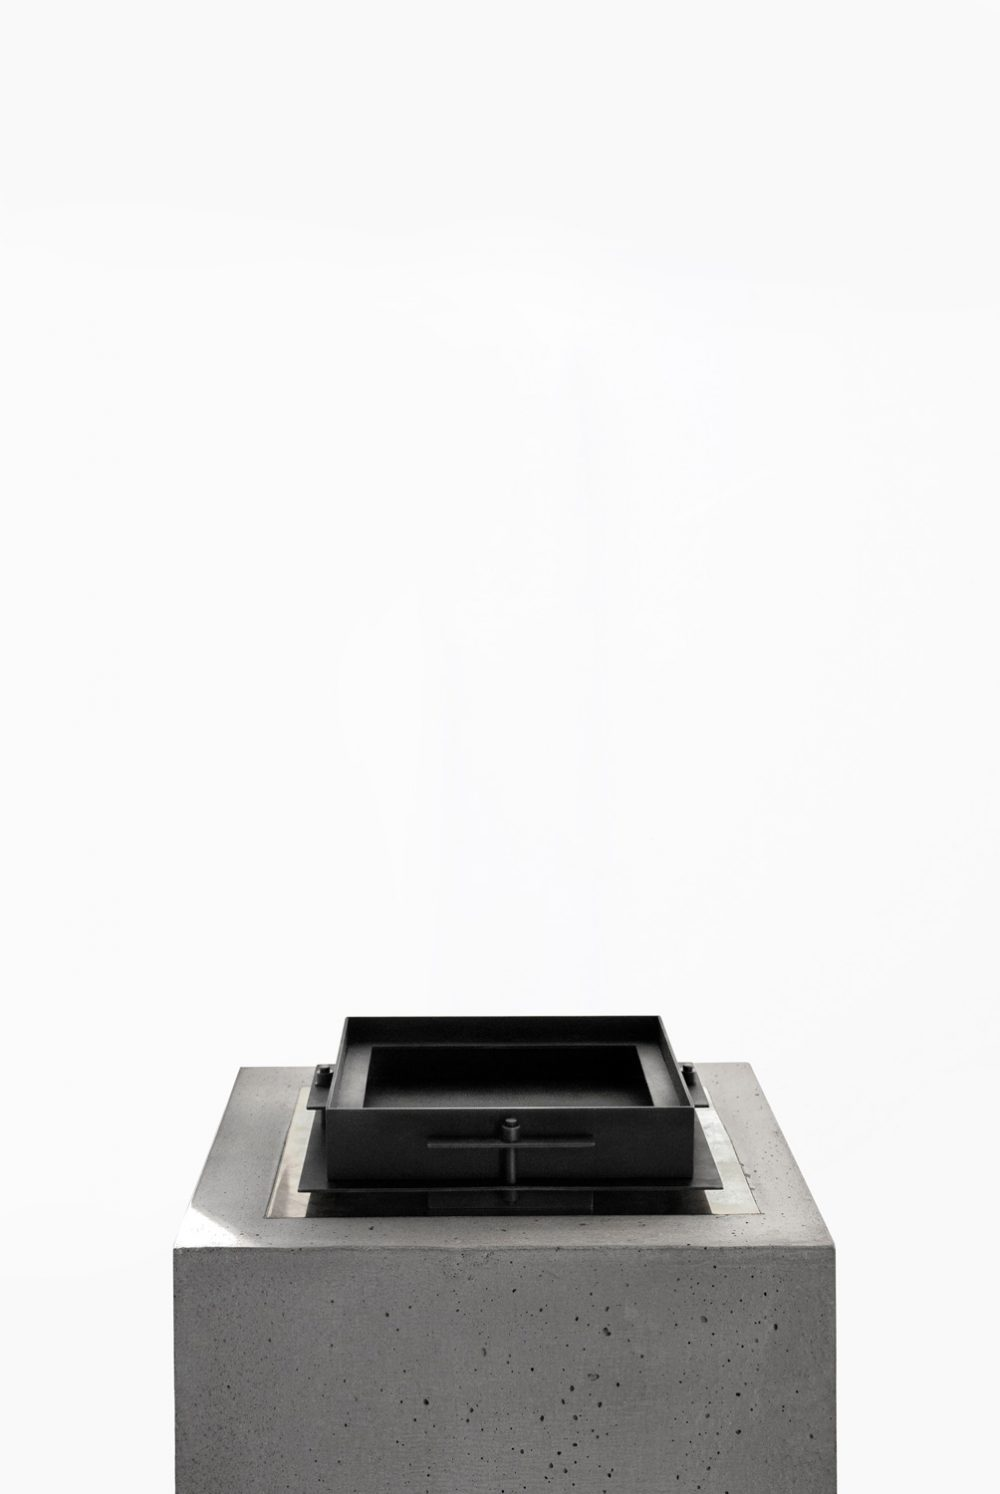 Sizar Alexis Pilier Blackened Steel Tray Small